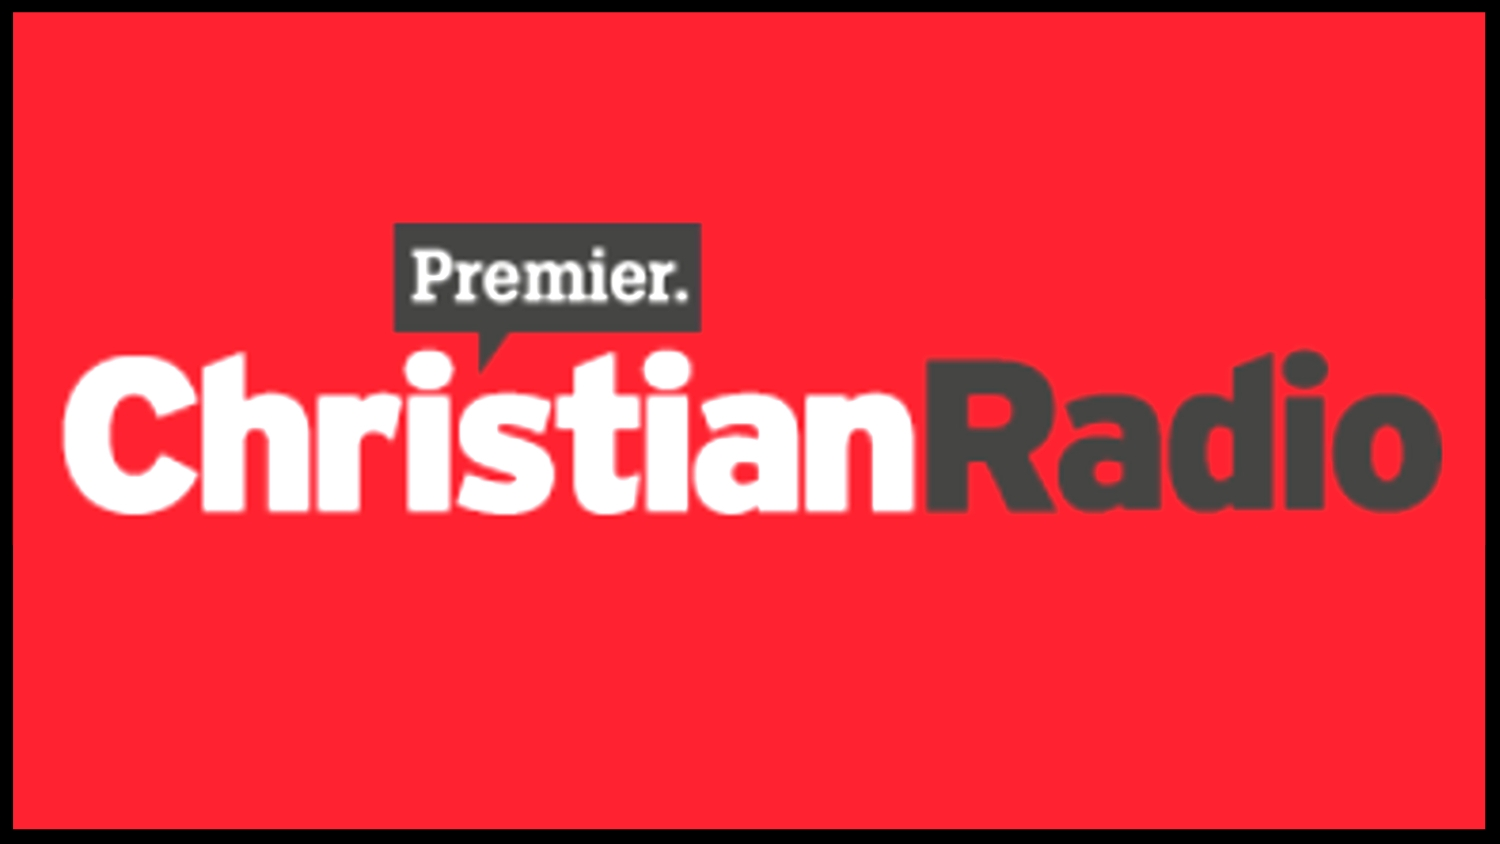 Premier Christian Radio - Inspirational Breakfast |    Cynthia Garrett's journey to faith   |  September 2015